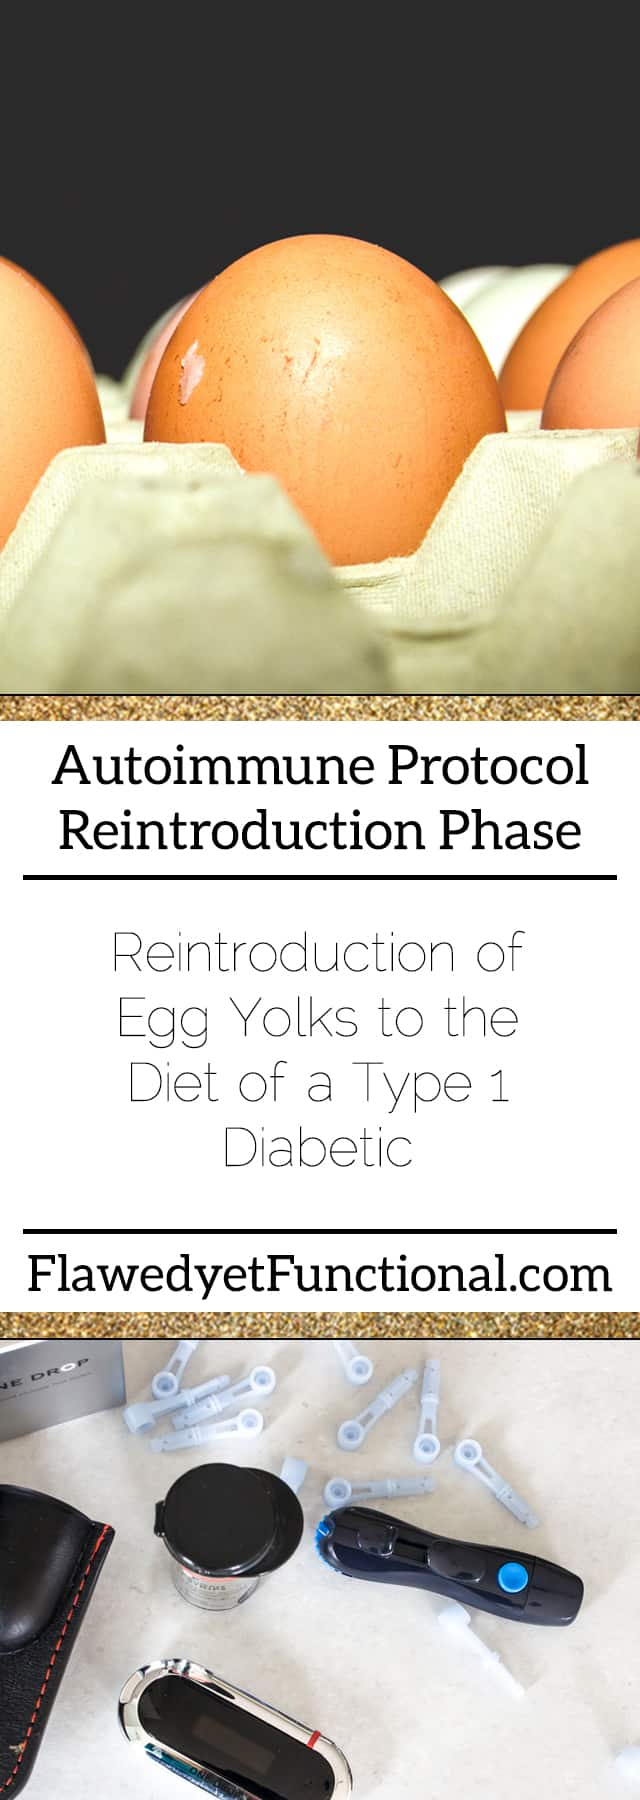 Autoimmune Protocol | Egg Yolk Reintroduction